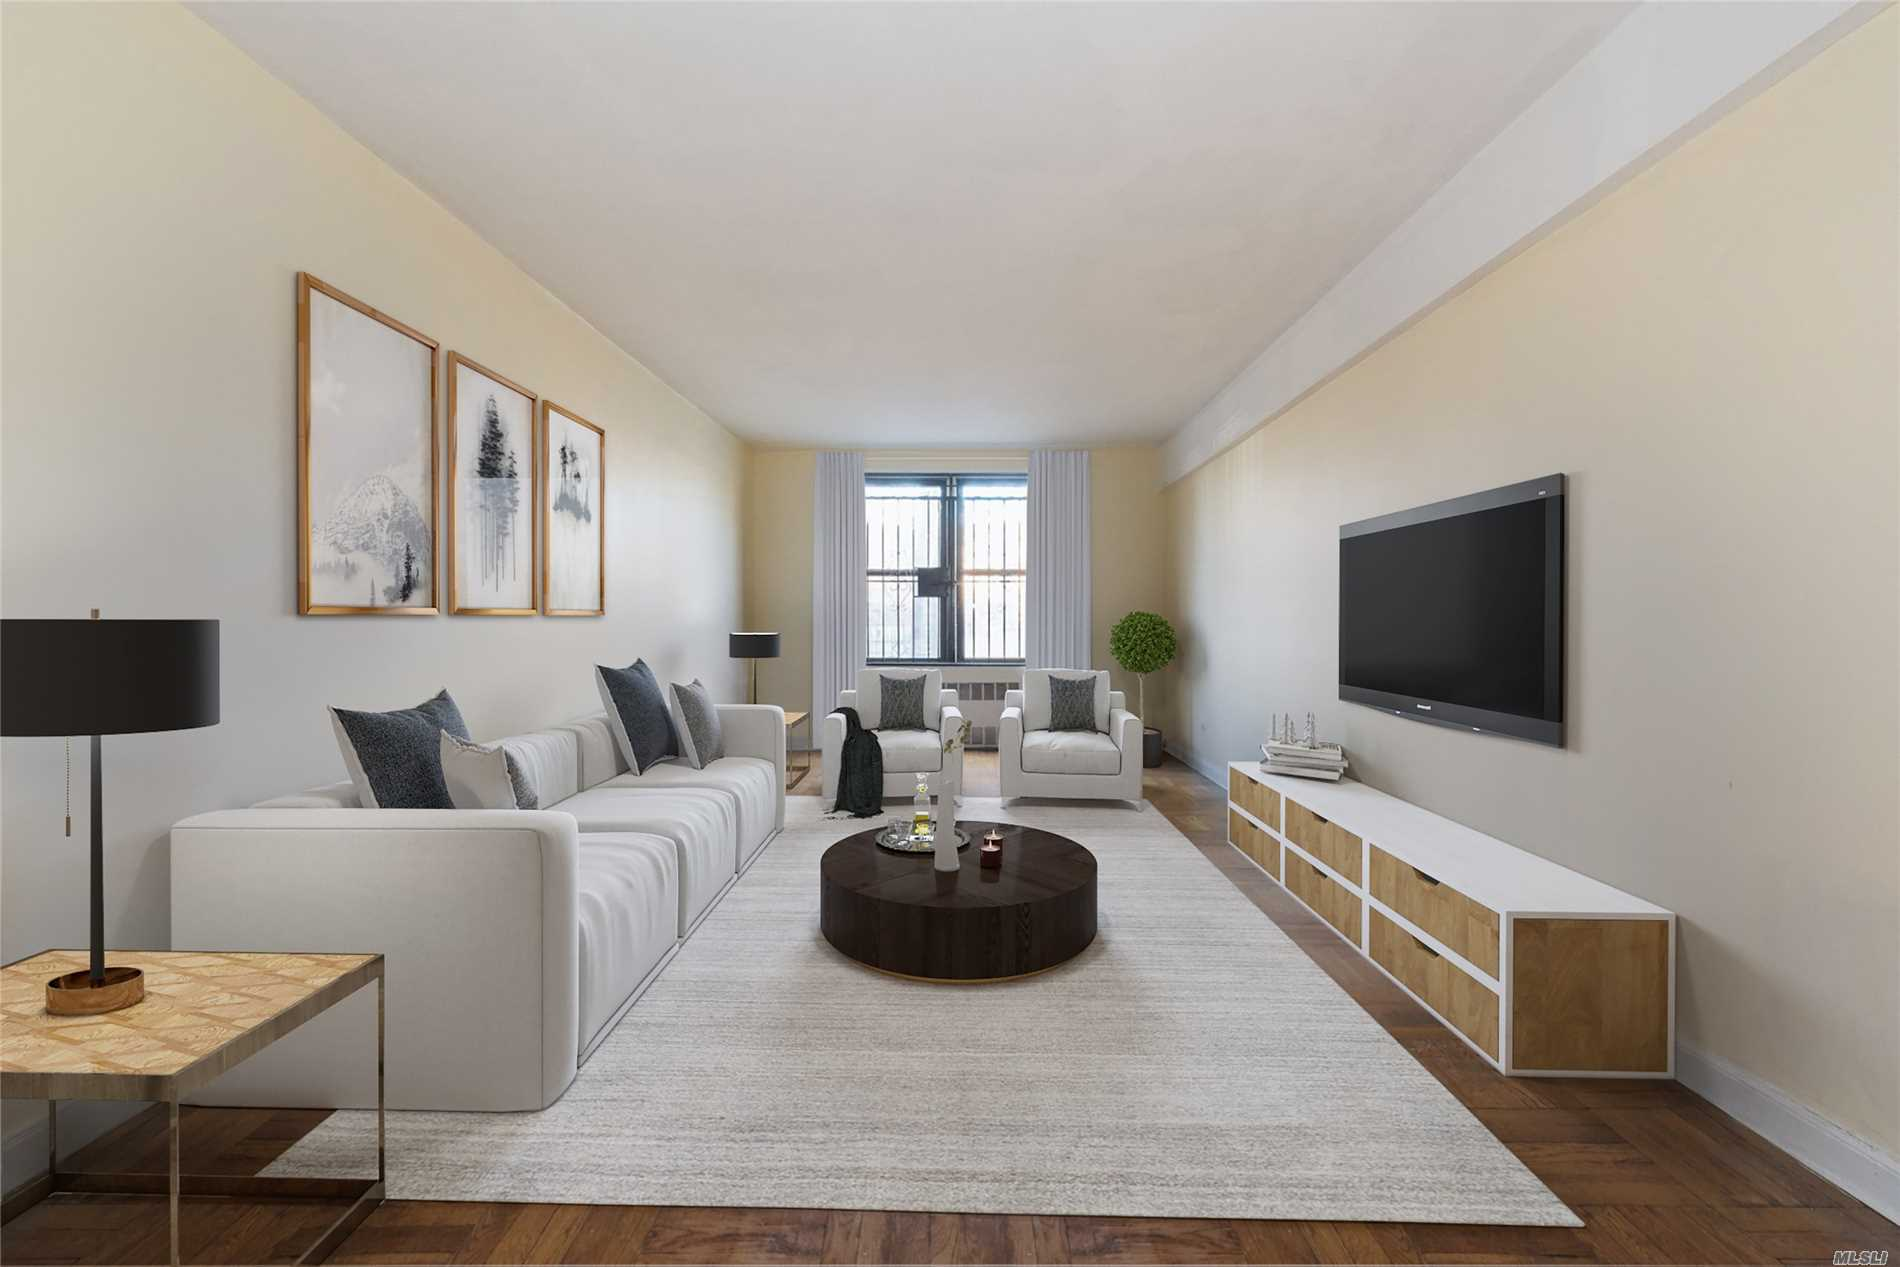 This Spacious 2 Bedroom, Large Living Room, 1.5 Bath Coop Apt, With Generous Closet Space, Faces South Providing Beautiful Natural Sunlight All Day And Views Of Tall London Plane Trees. Secure 1st Flr Location Provides View Of Coop's Playground To Facilitate Supervision Of Children And Provides Ease Of Access To Laundry Room. Apt Is Peaceful And Quiet. Southridge Coop Section 4 Grounds Are In A Well Maintained Garden Setting And Is Conveniently Located Near Shopping And Public Transportation.